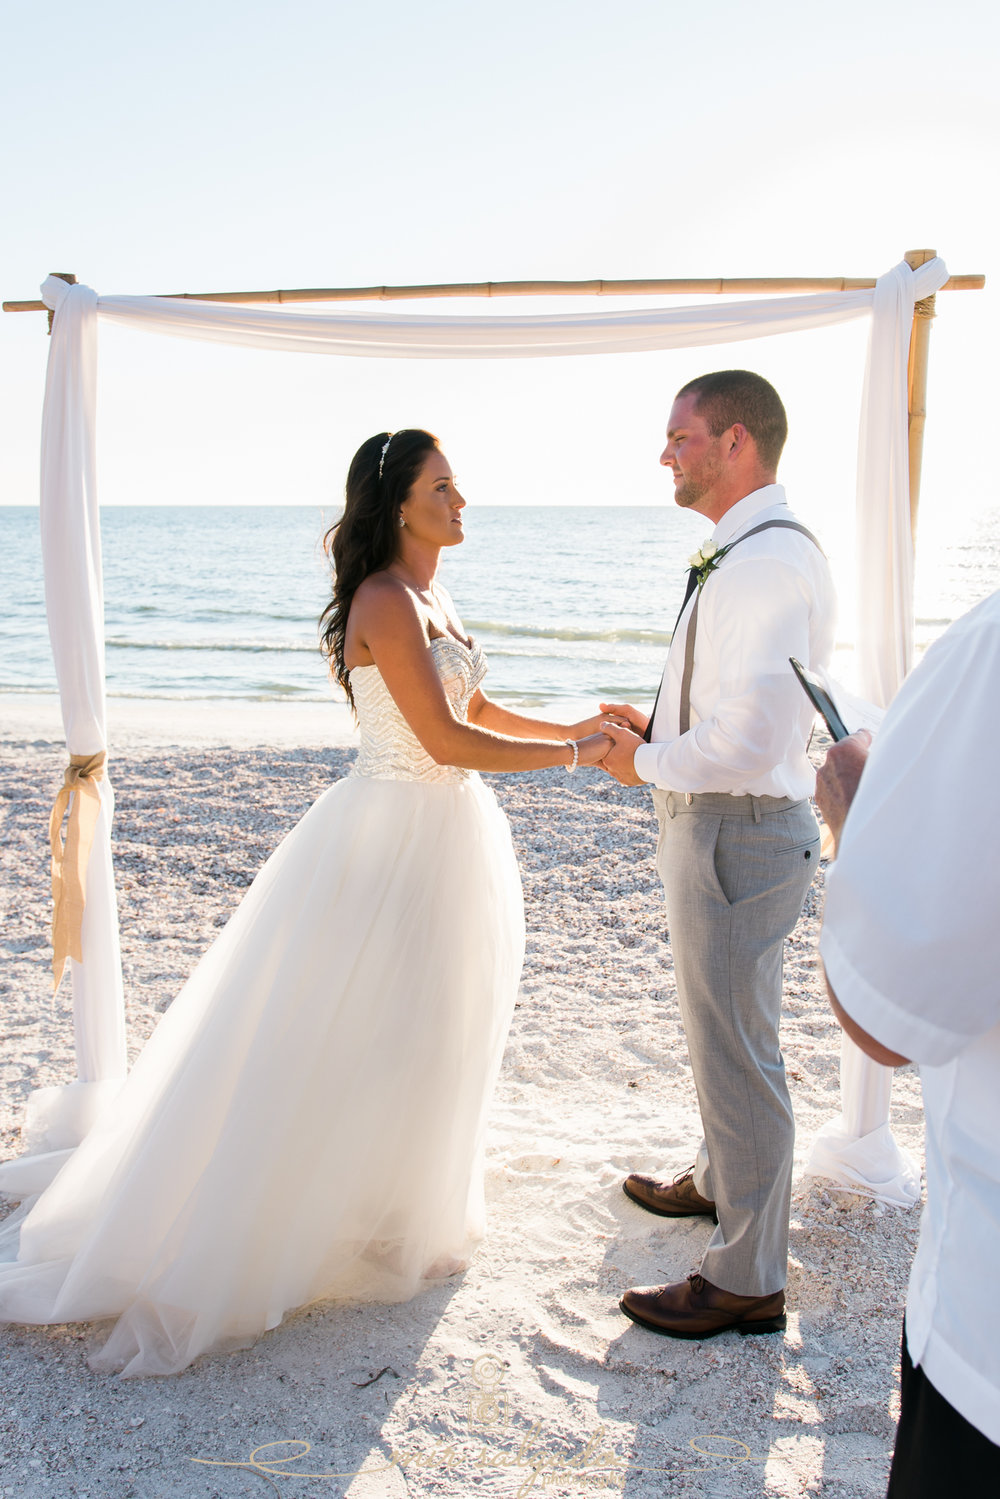 St.Pete-beach-wedding-ceremony, St.Pete-beach-wedding-photo